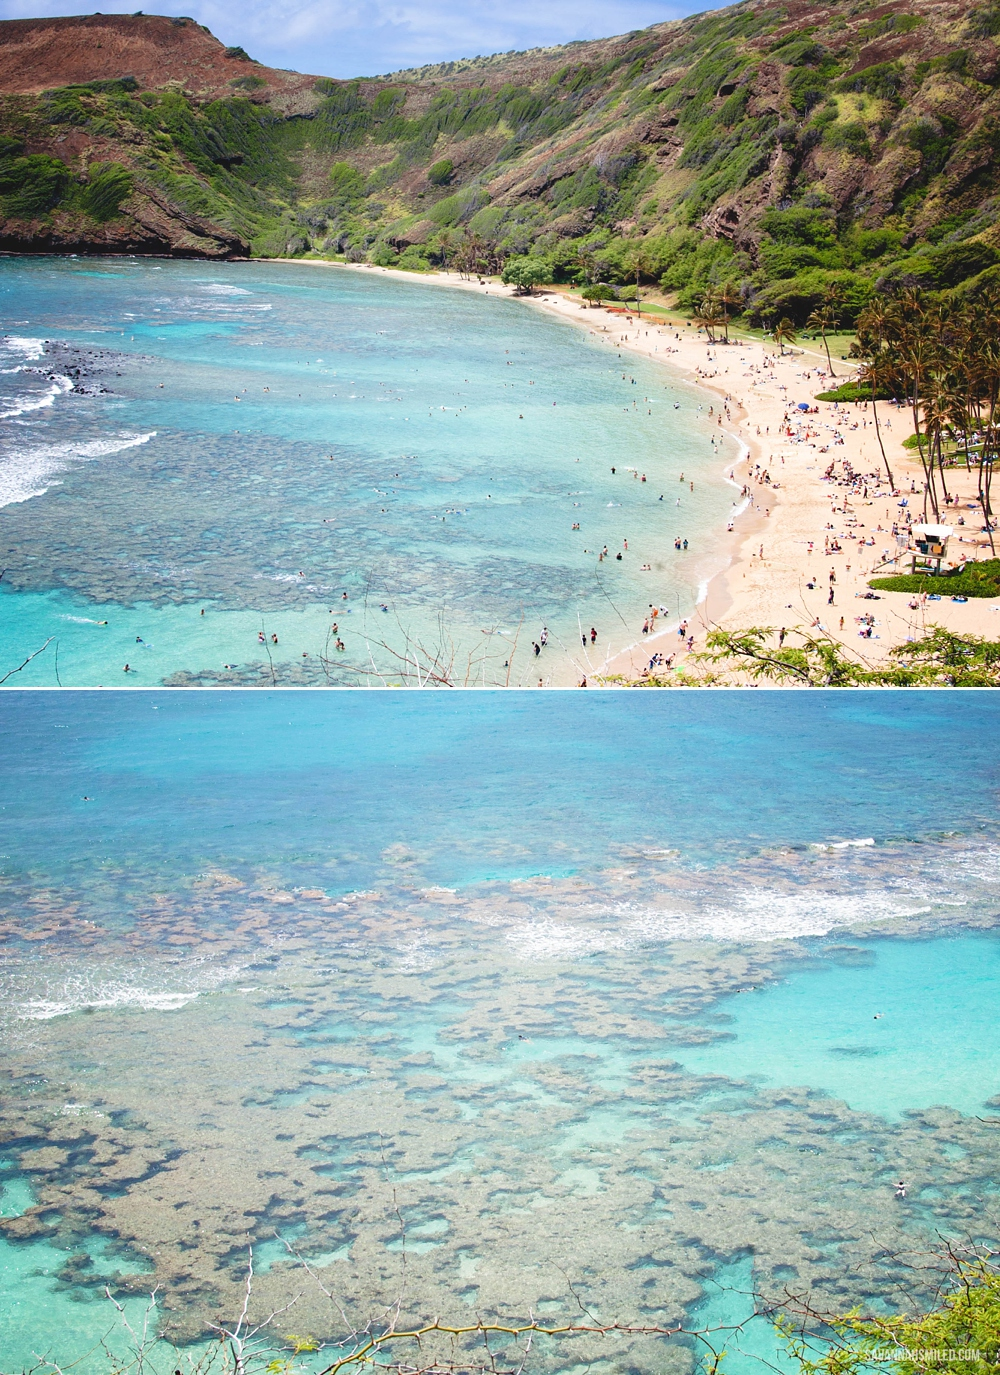 Hanauma-bay-hawaii-vacation-spot-beach-snorkel-1.jpg